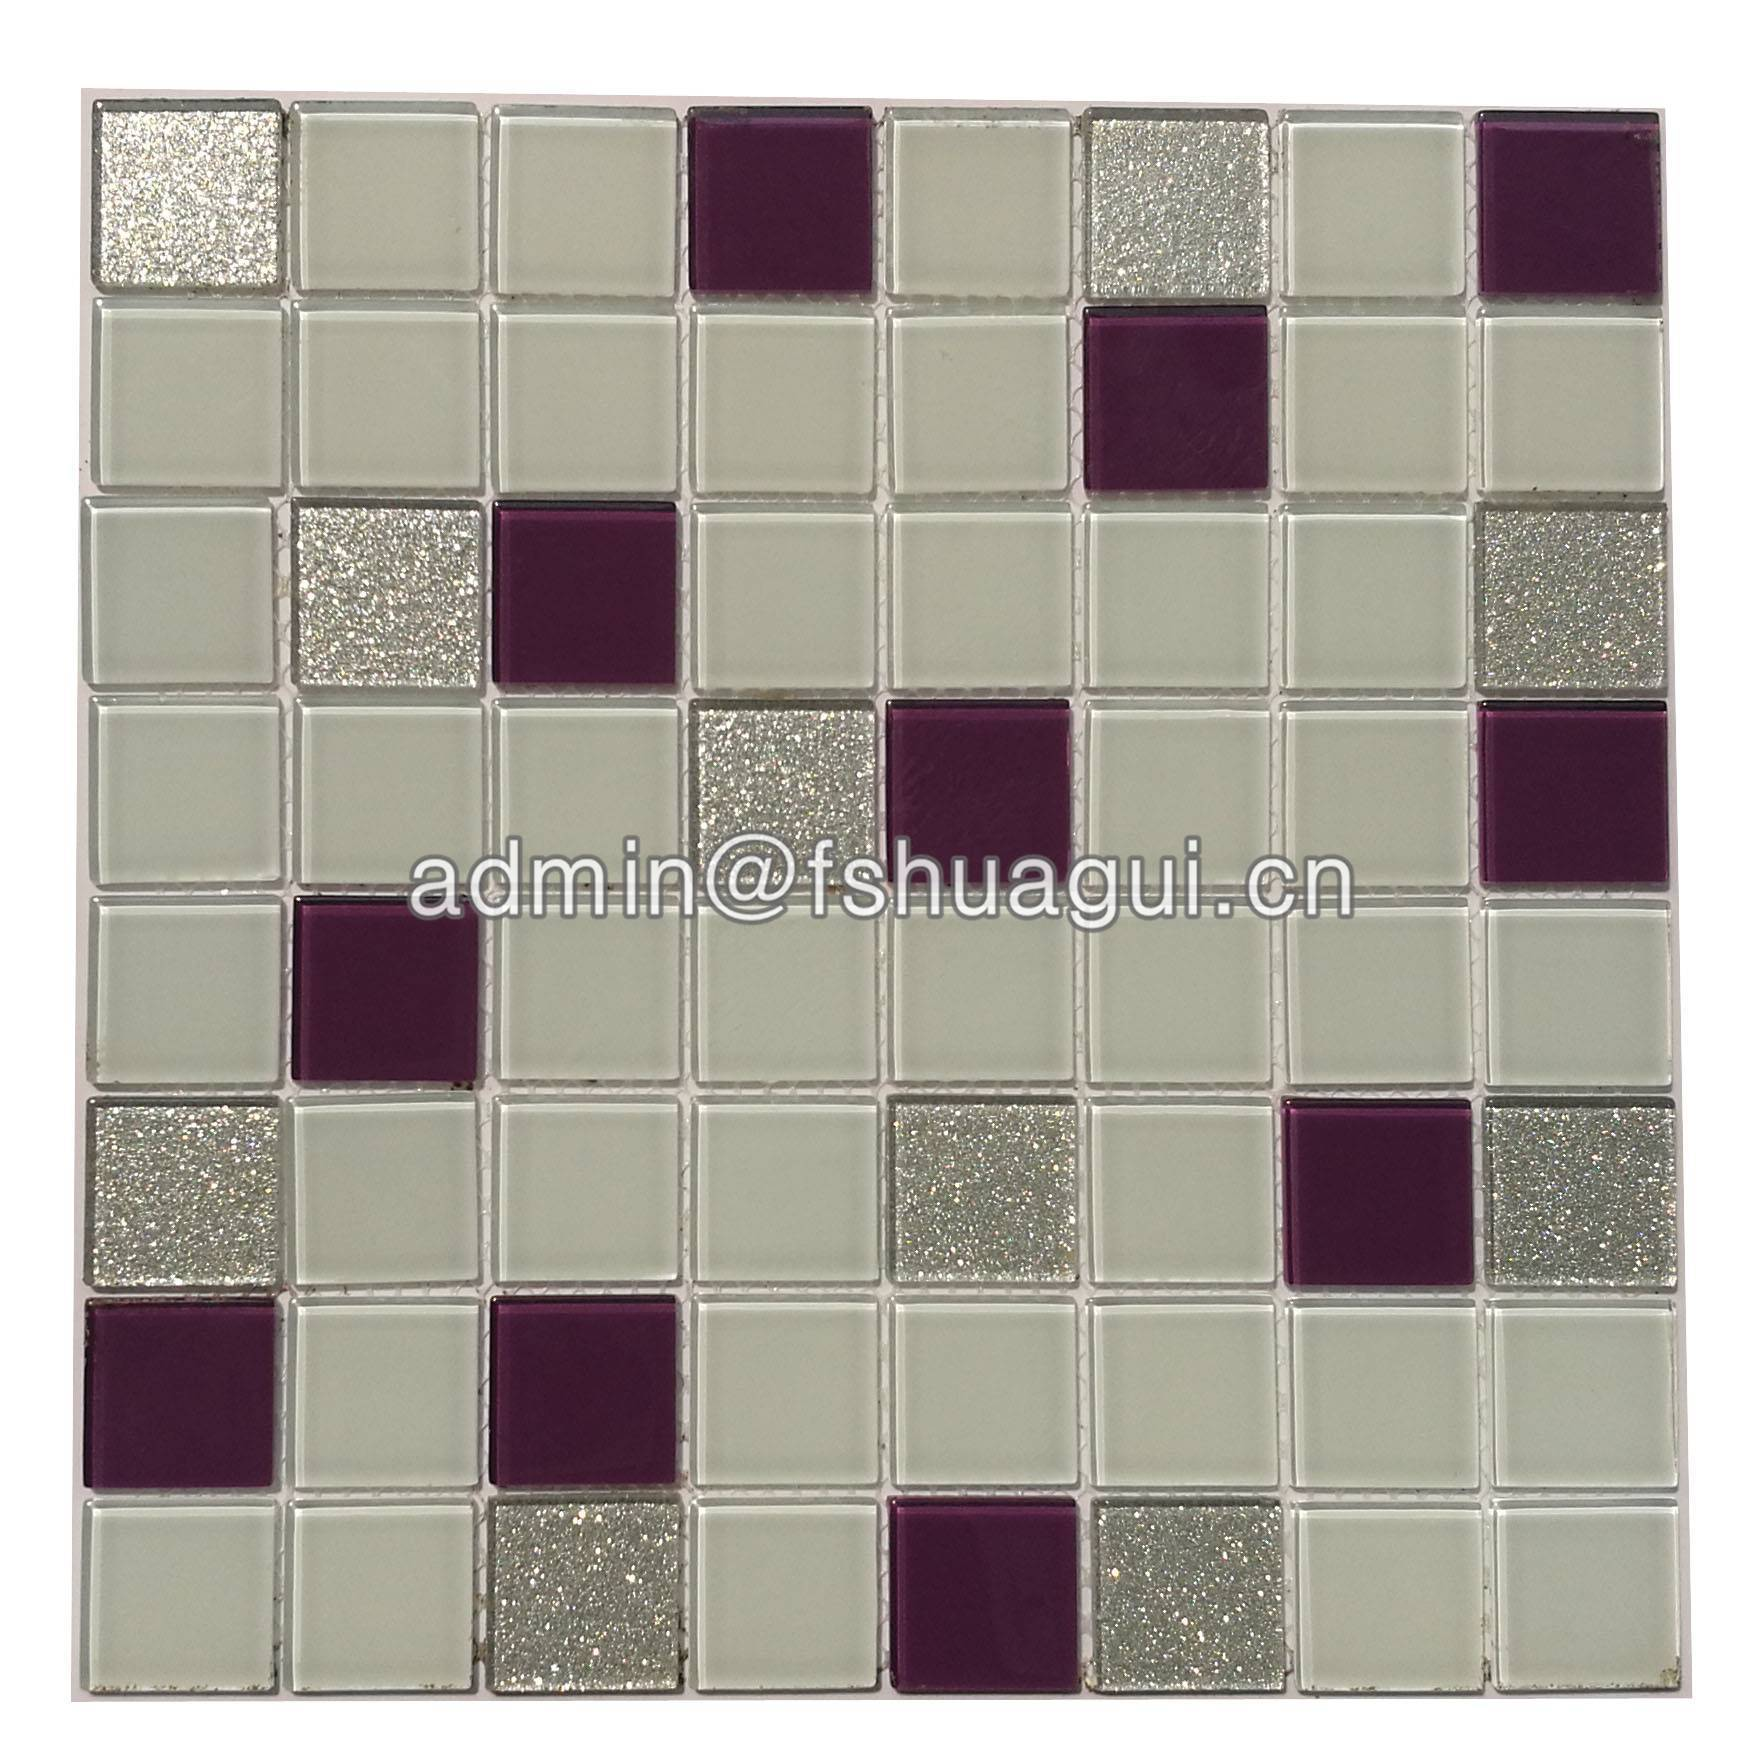 Tub surround purple glass mosaic tile backsplash design HG-13002